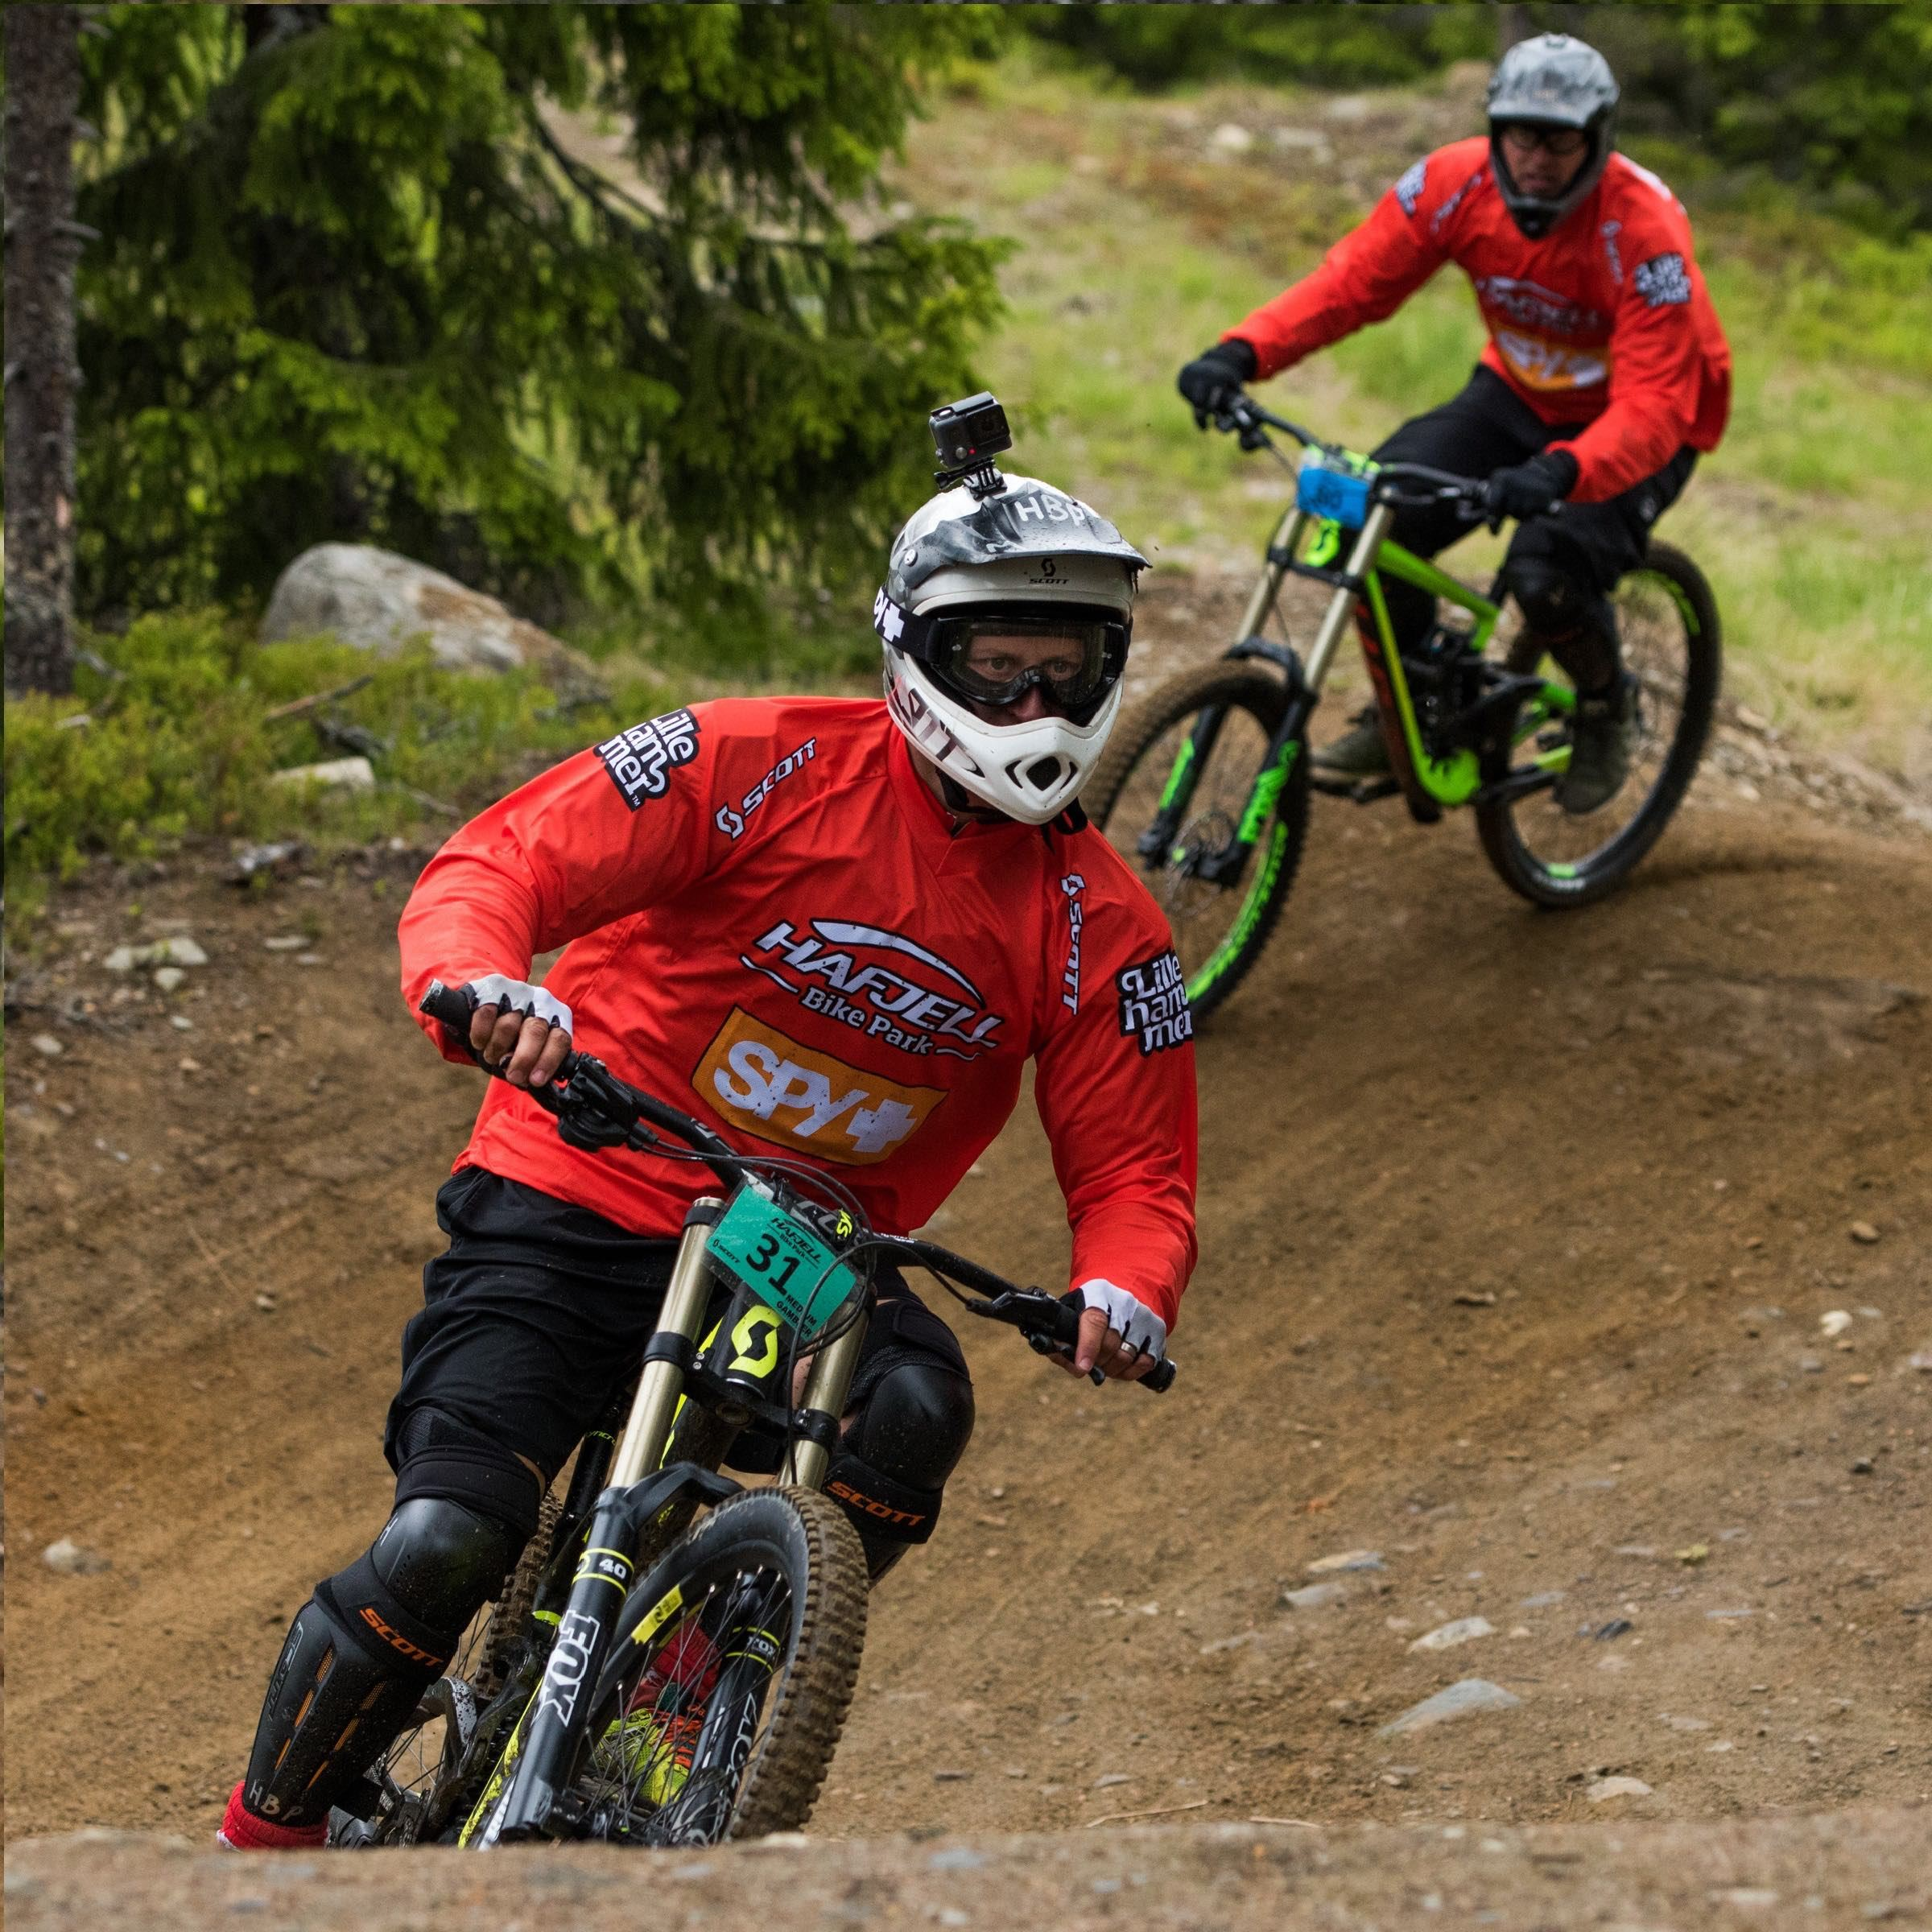 Gift card - All included 1 day in Hafjell Bike Park - ADULT - 1 day